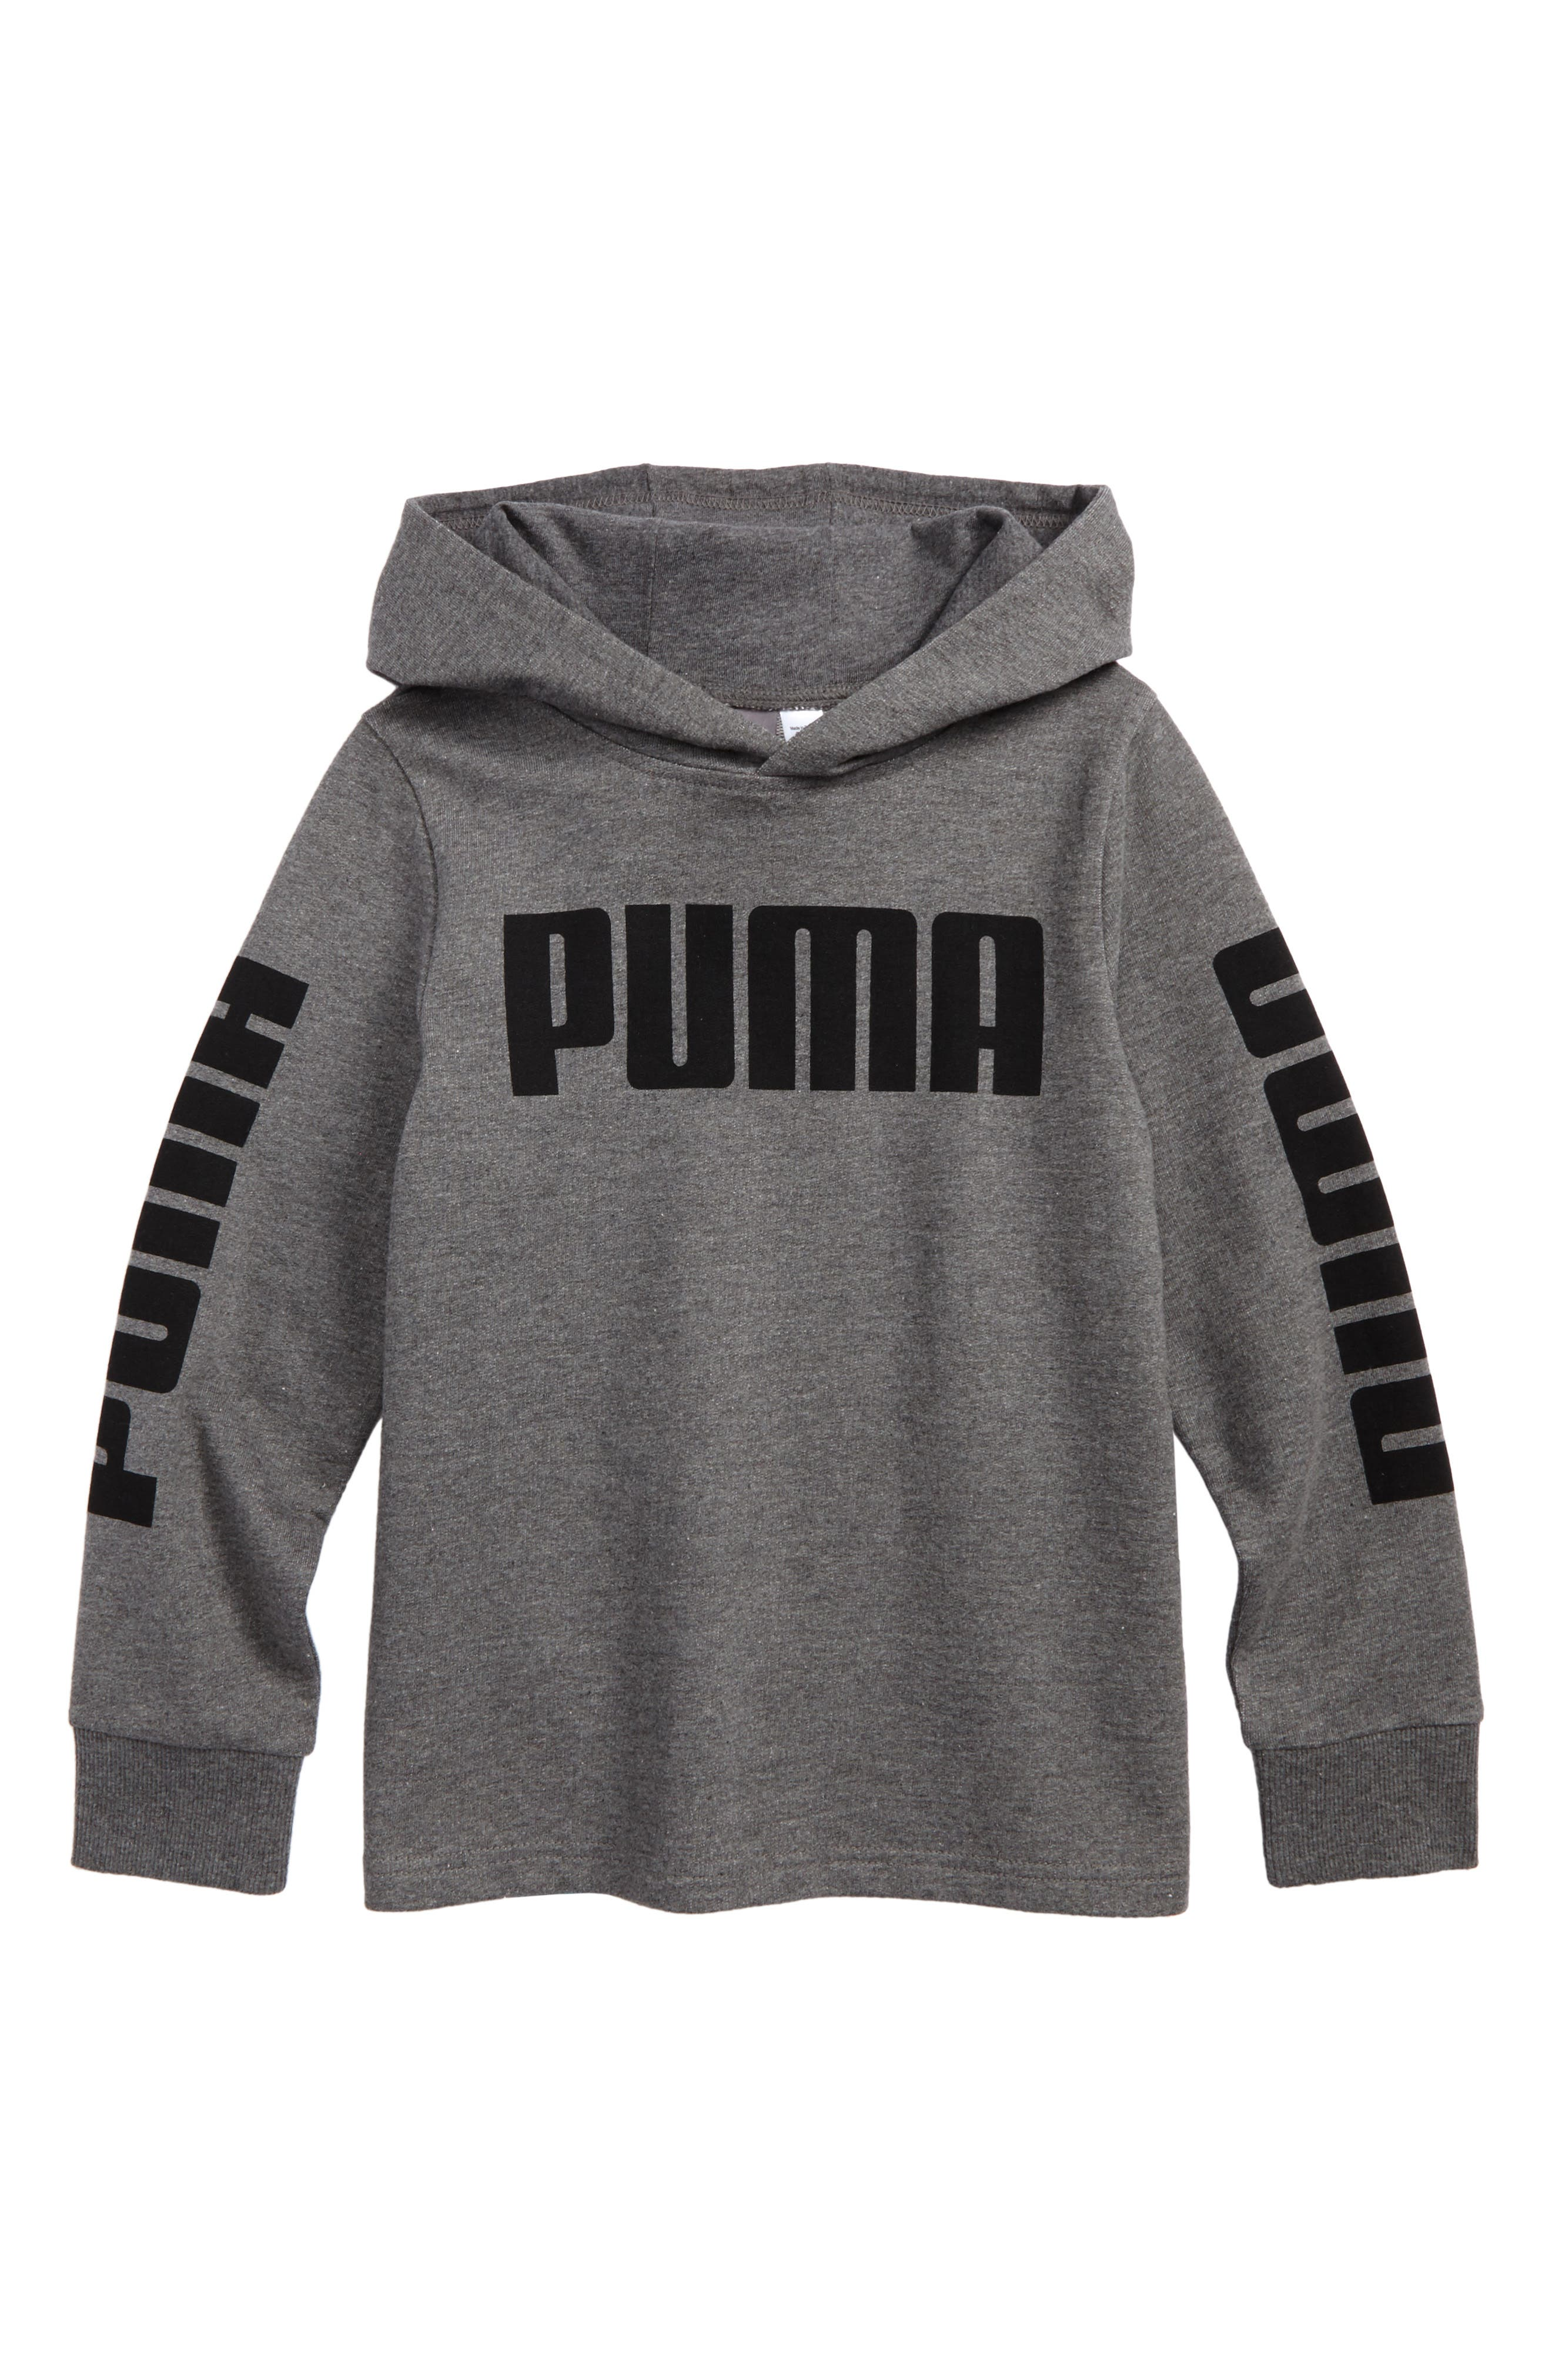 Rebel Logo Graphic Hoodie,                         Main,                         color, Charcoal Heather